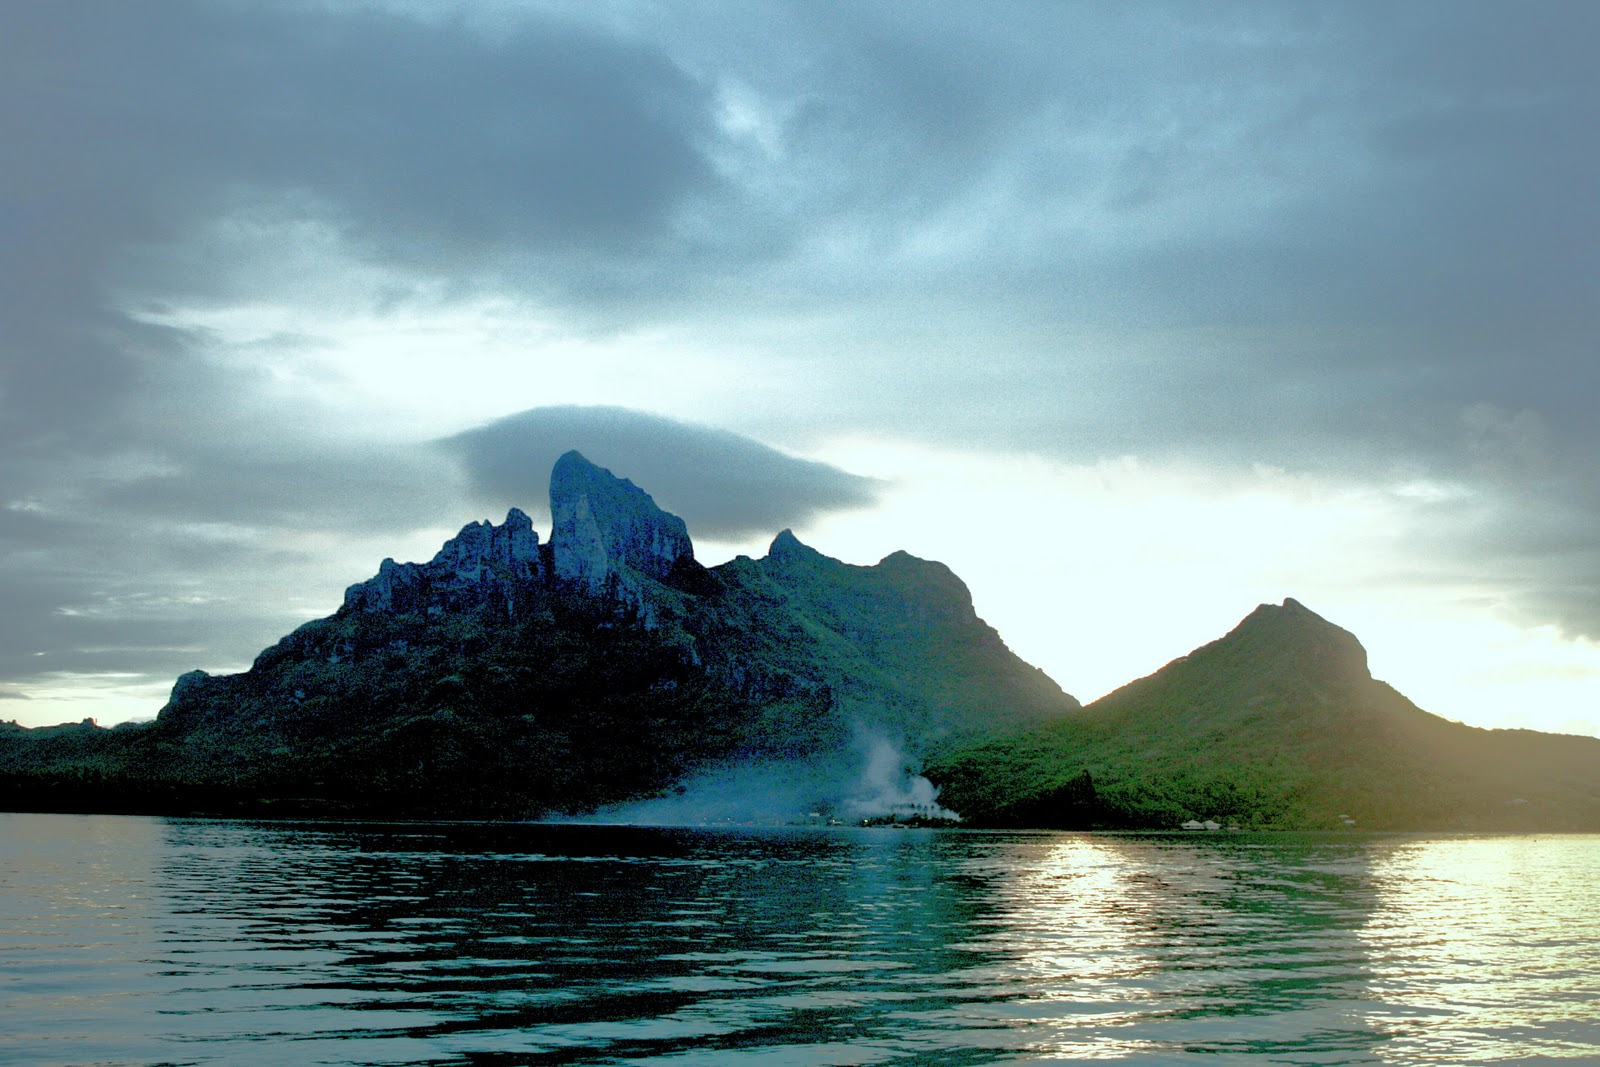 SEARCHING FOR PARADISE: THE MANY FACES OF MOUNT OTEMANU IN